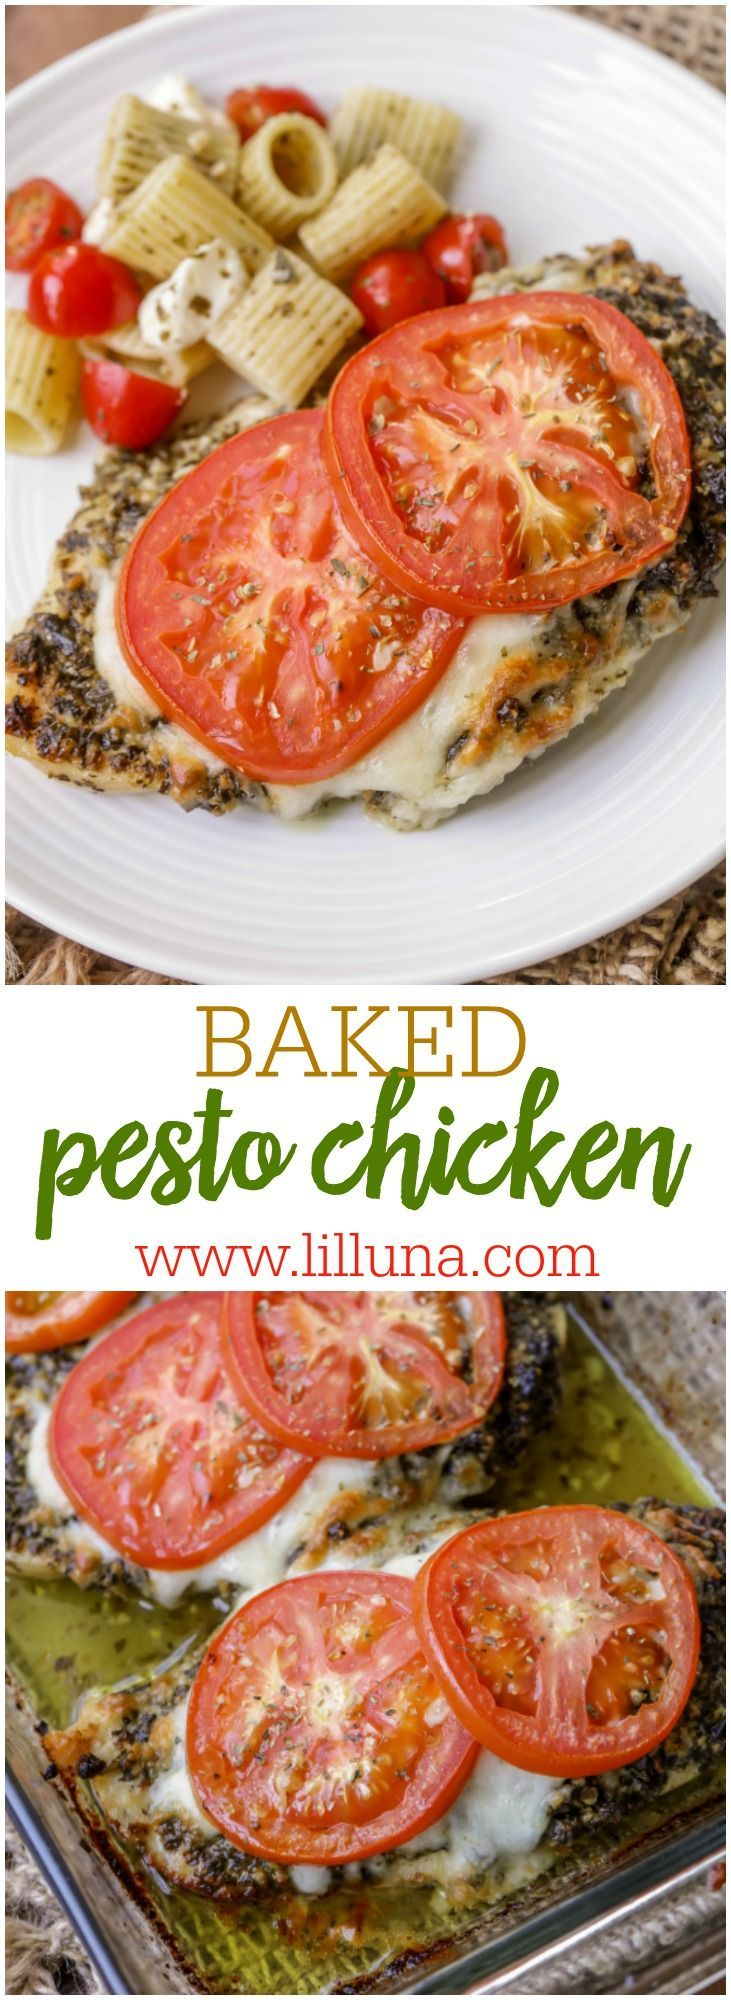 Baked Pesto Chicken - Chicken breast halves covered in basil pesto, baked with mozzarella cheese and tomatoes. So easy, but SO delicious! (Italian Chicken Pesto)